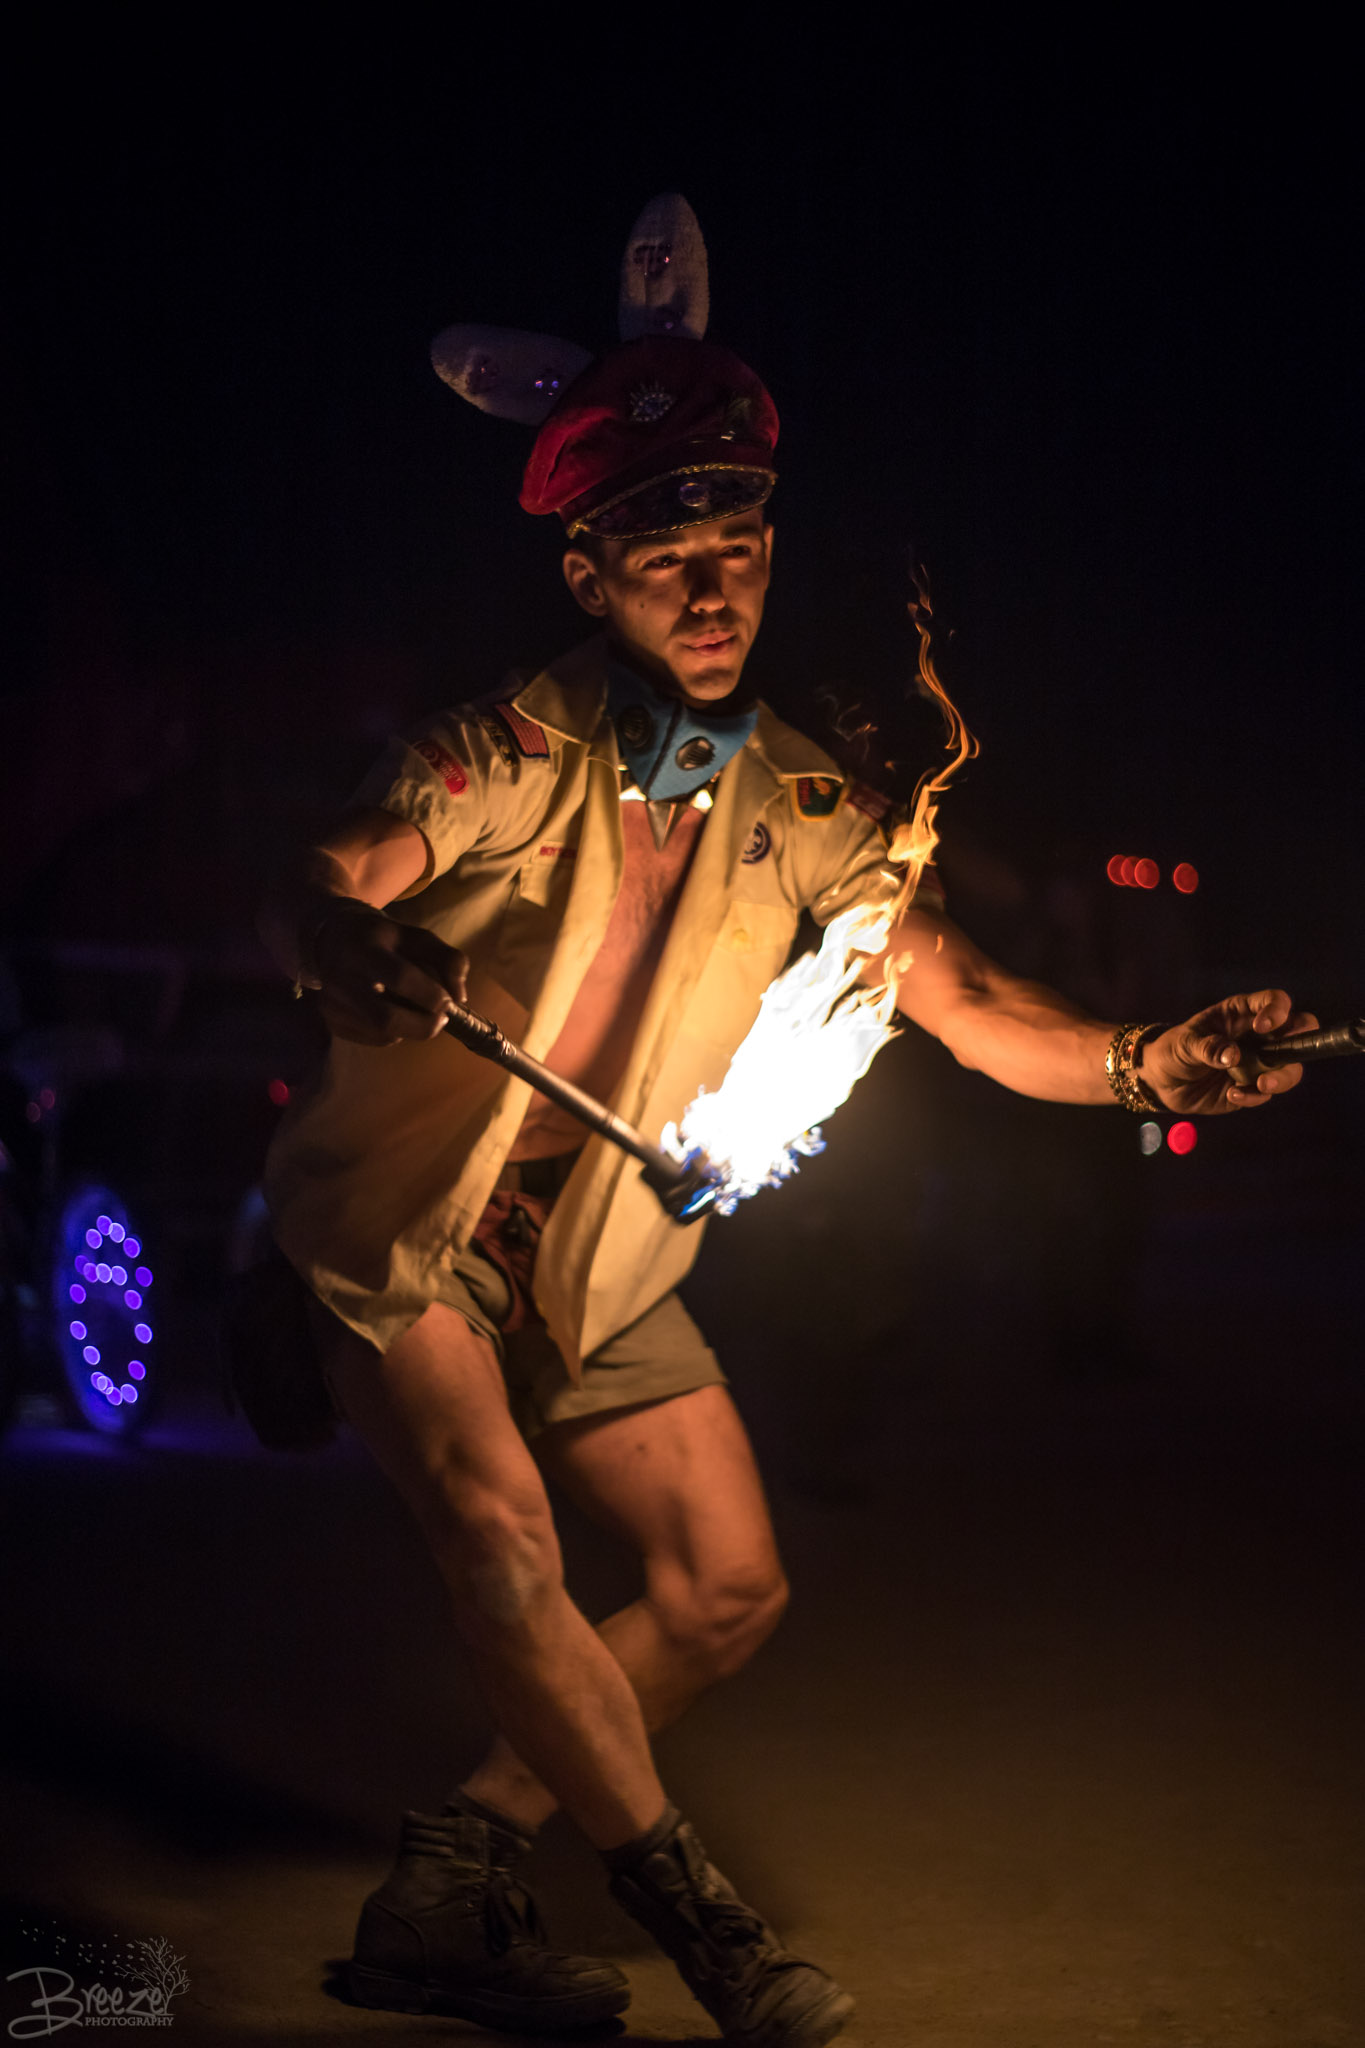 Brie'Ana Breeze Photography & Media - Burning Man 2018-3013.jpg